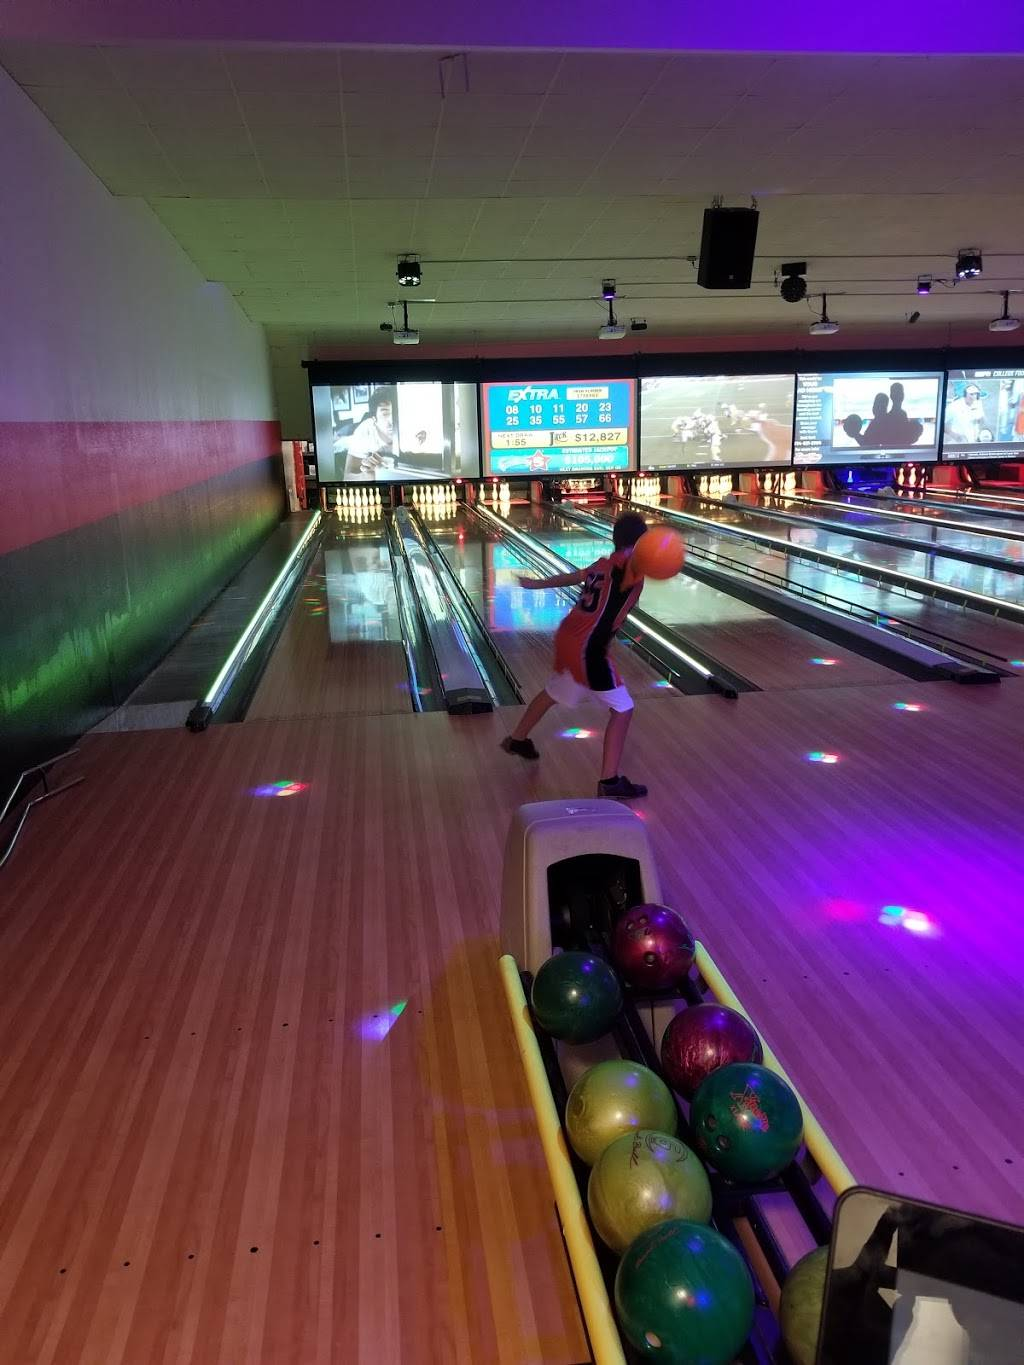 Forest View Lanes - Recreation Bar and Grill - bowling alley  | Photo 3 of 10 | Address: 2345 W Dean Rd, Temperance, MI 48182, USA | Phone: (734) 847-4915